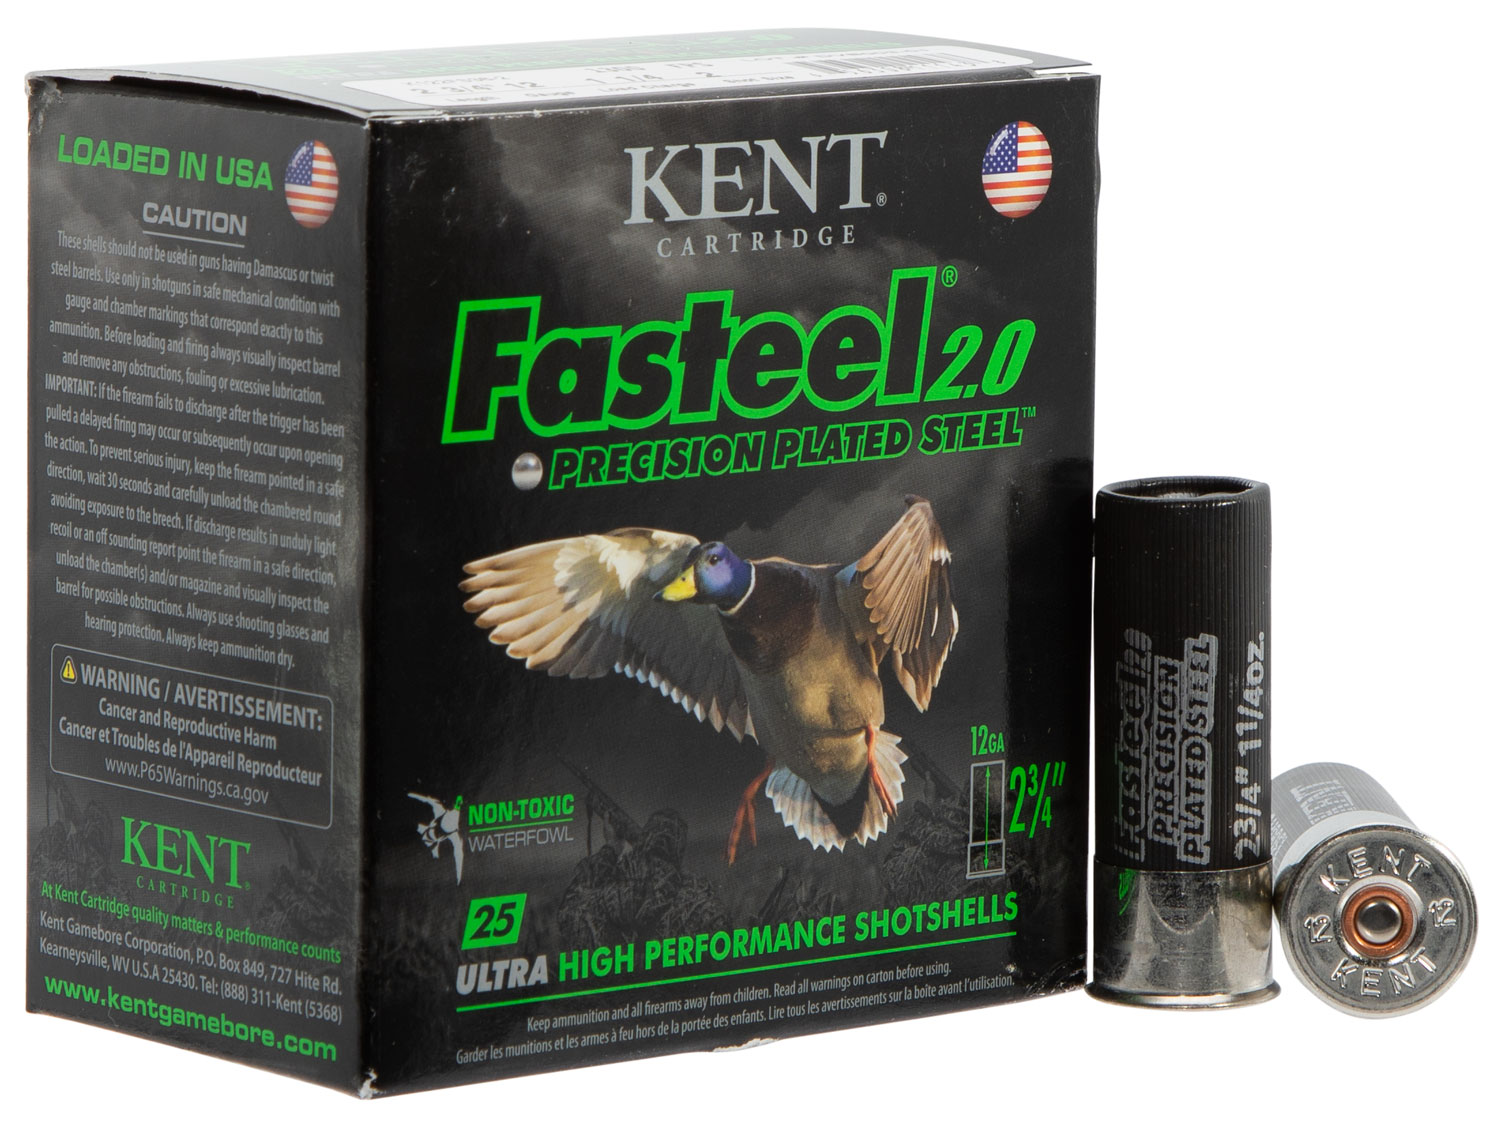 Kent Cartridge K122FS362 Fasteel 2.0  12 Gauge 2.75